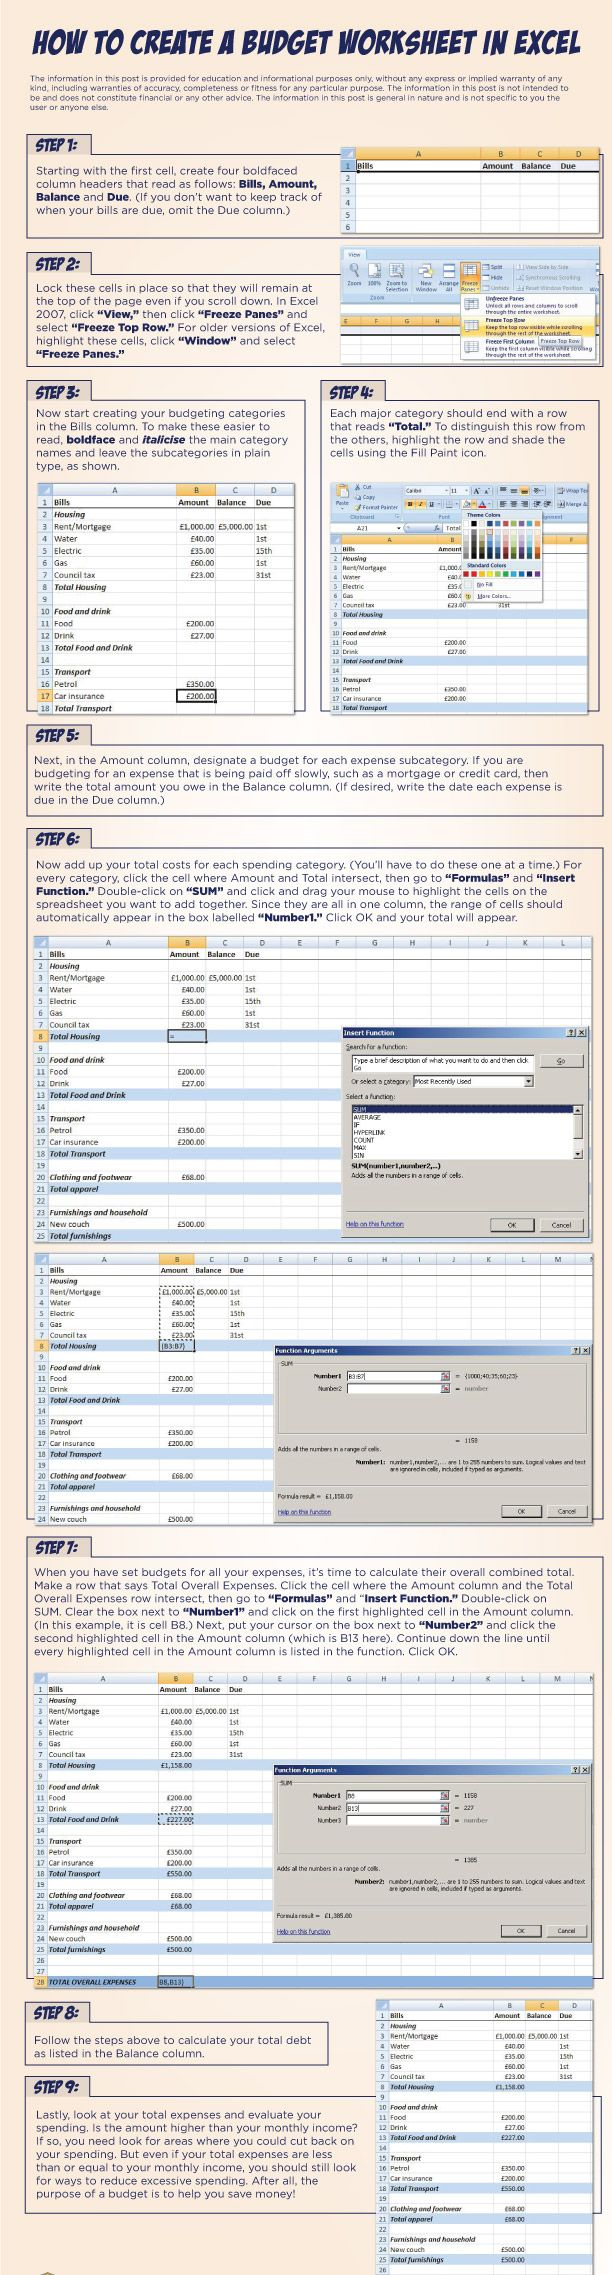 Worksheets Creating A Budget Worksheet learn how to create a budget worksheet in excel step by step